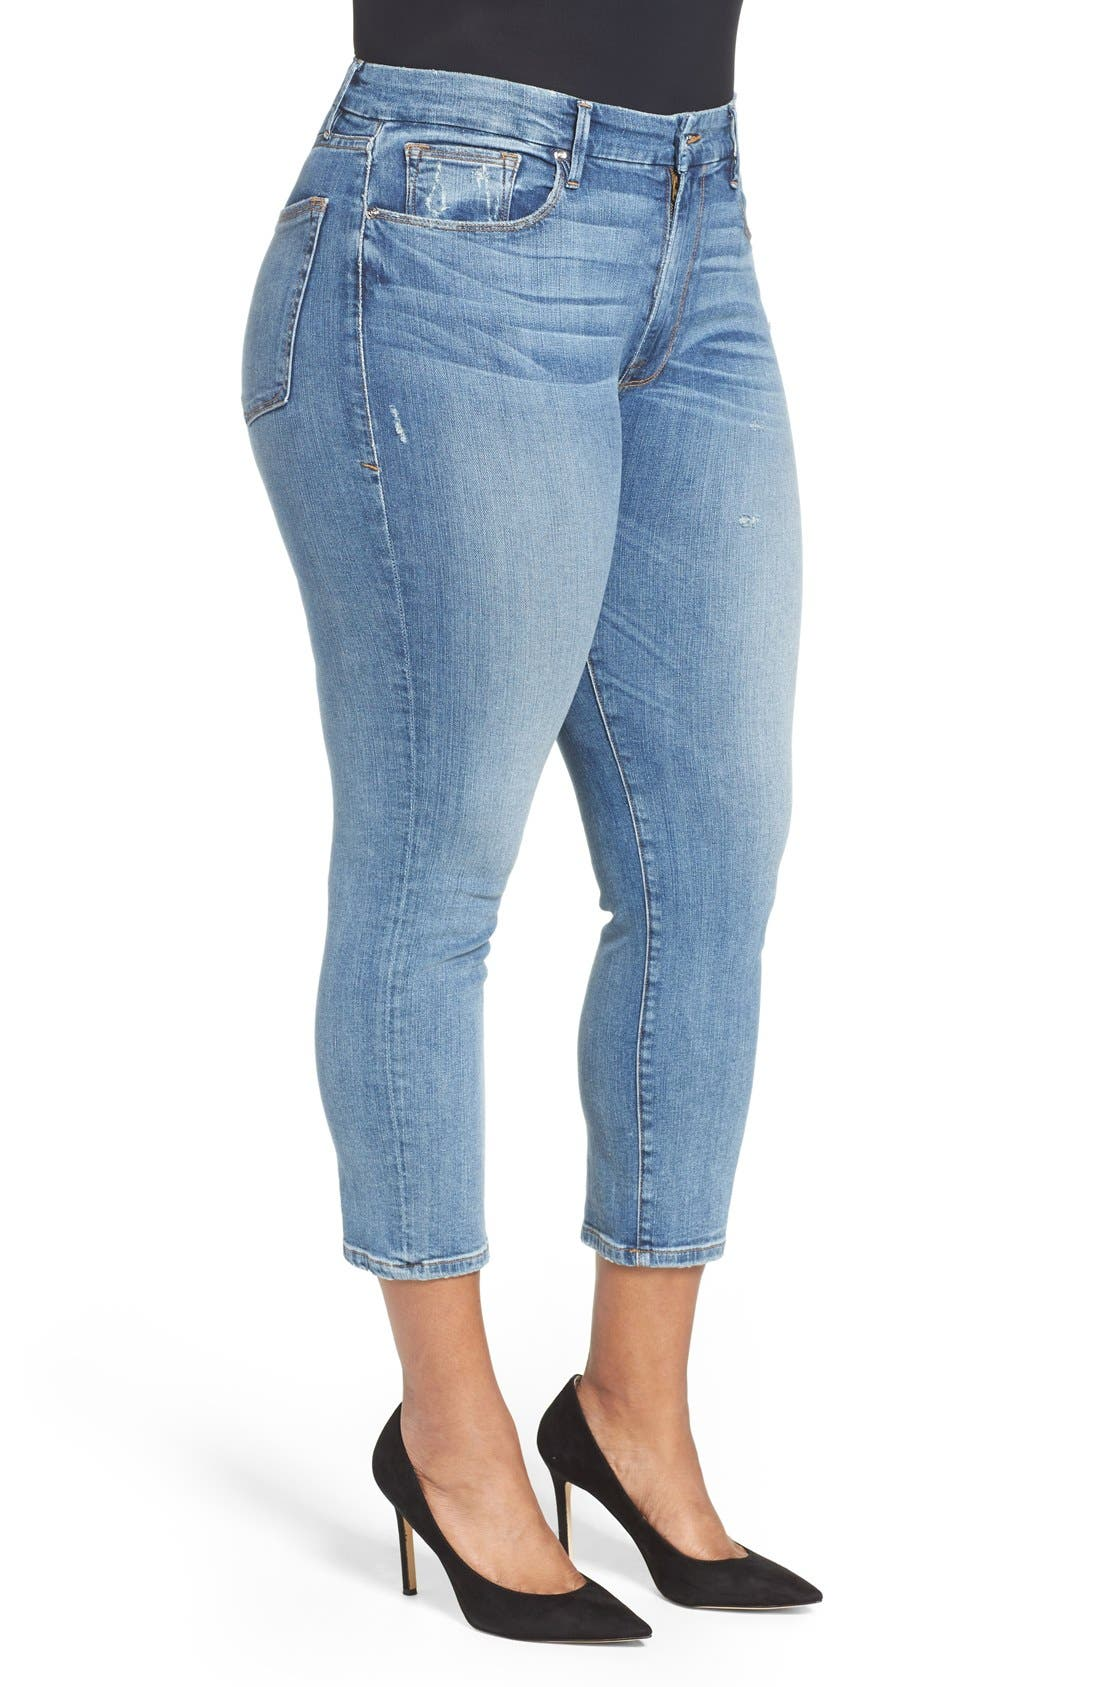 Good Cuts High Rise Boyfriend Jeans,                             Alternate thumbnail 9, color,                             Blue 012